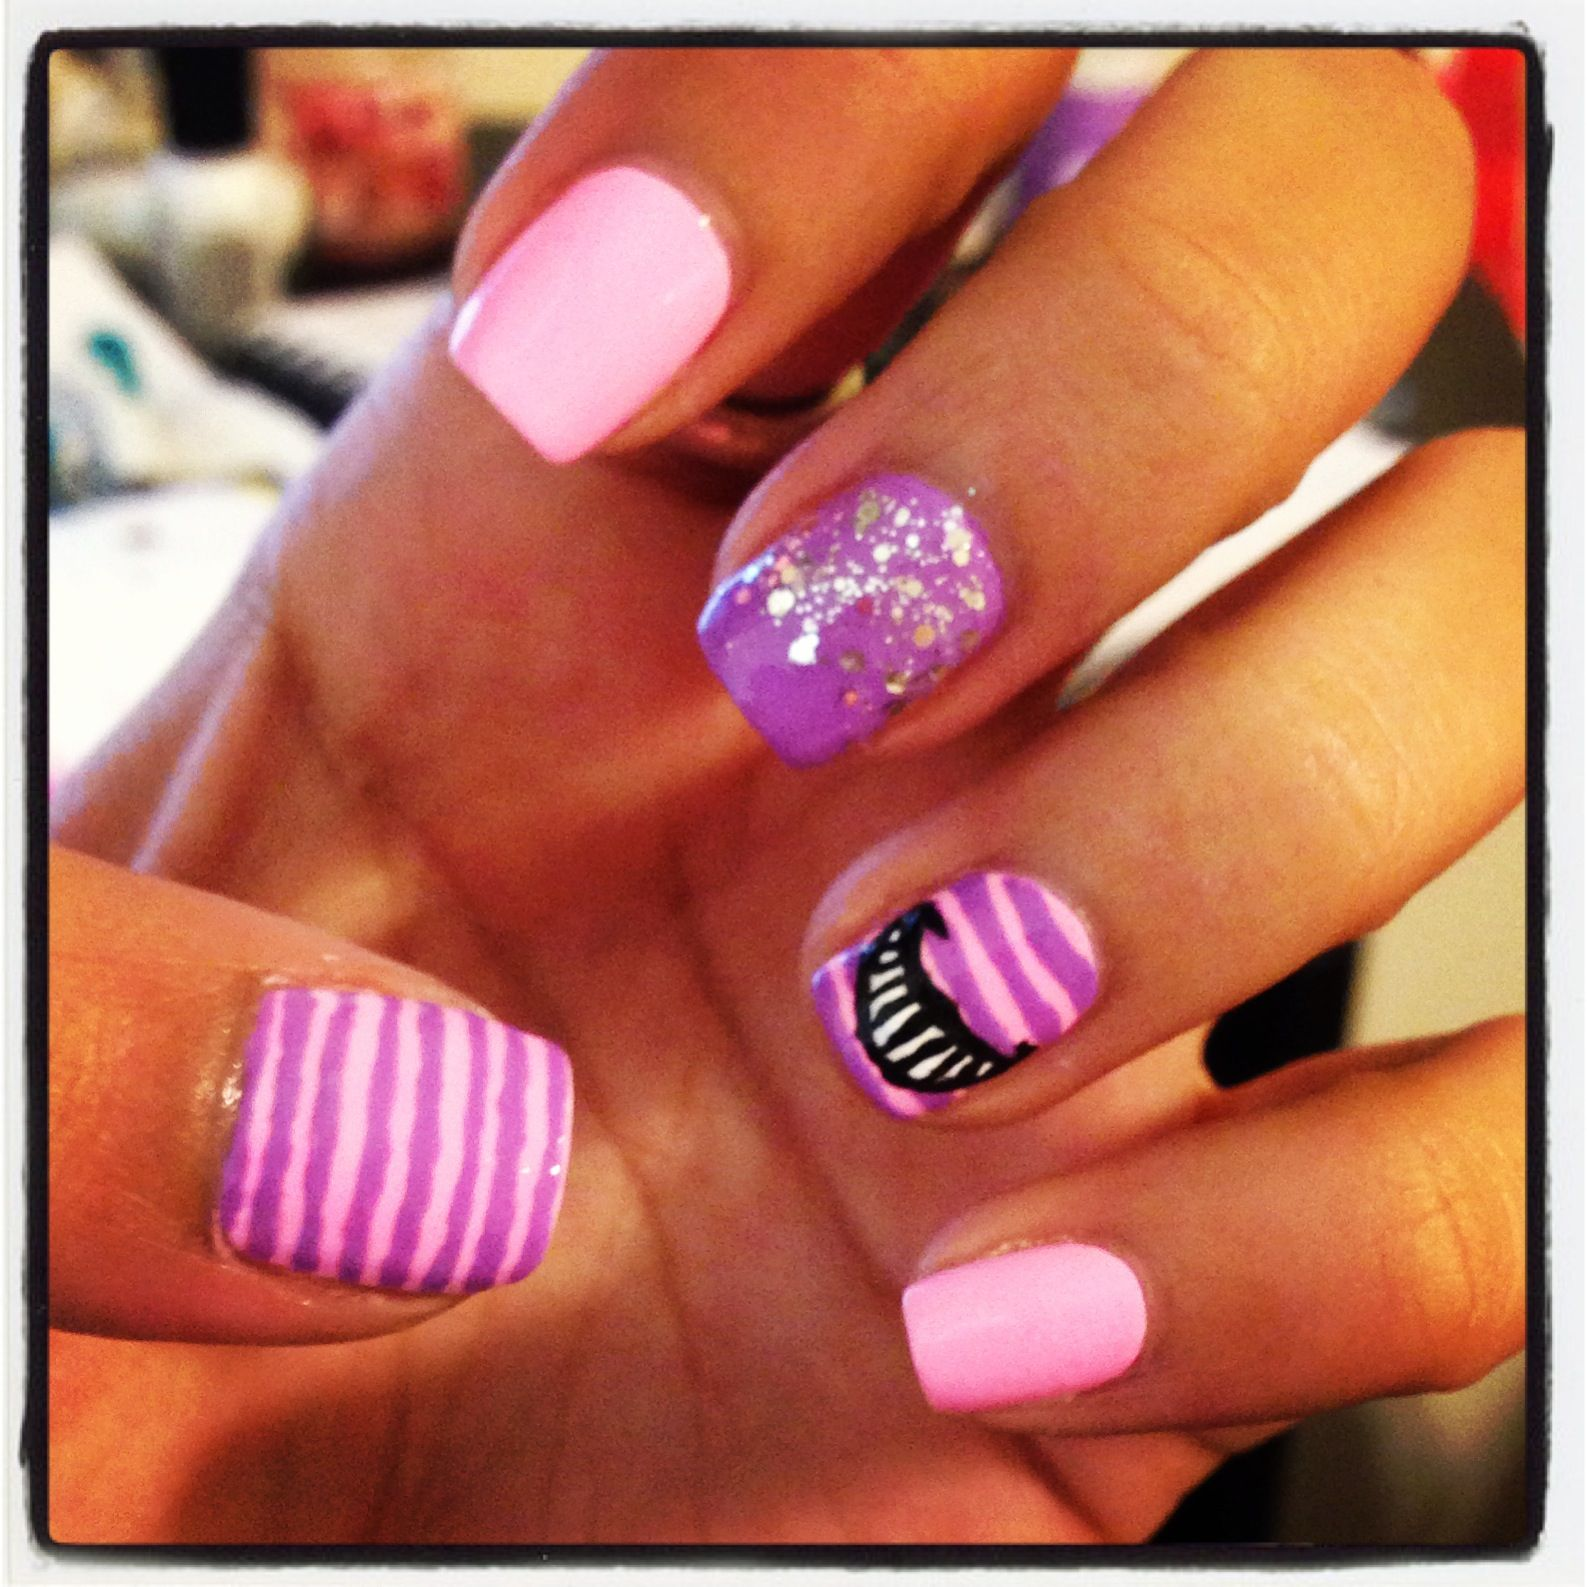 Cheshire Cat Nail Art I Love These So Cute And